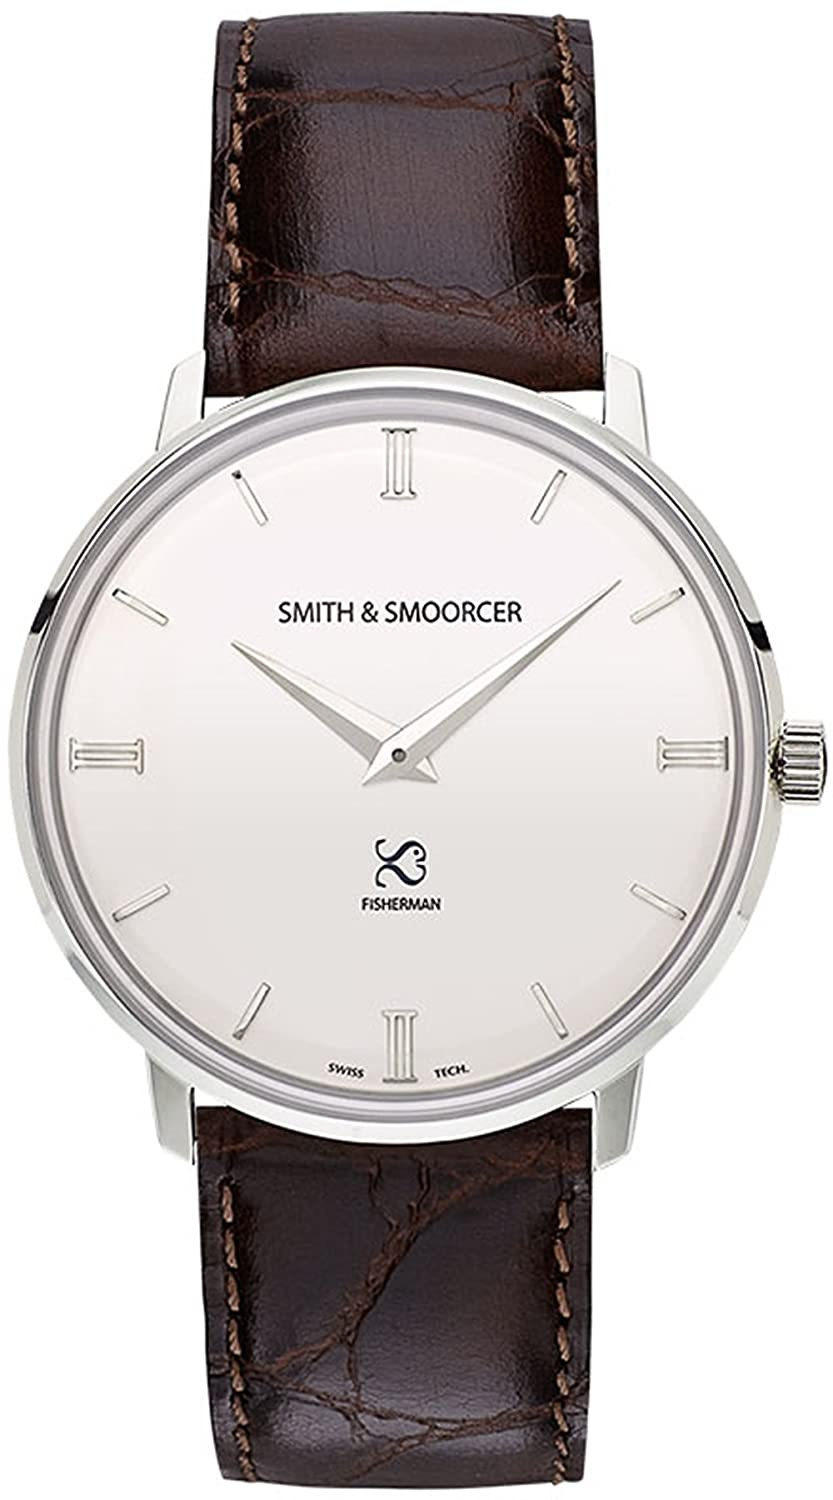 Smith & Smoorcer Fisherman Snowy Luxury Coffee Herr uhren F-1516-LUX-P-B-01